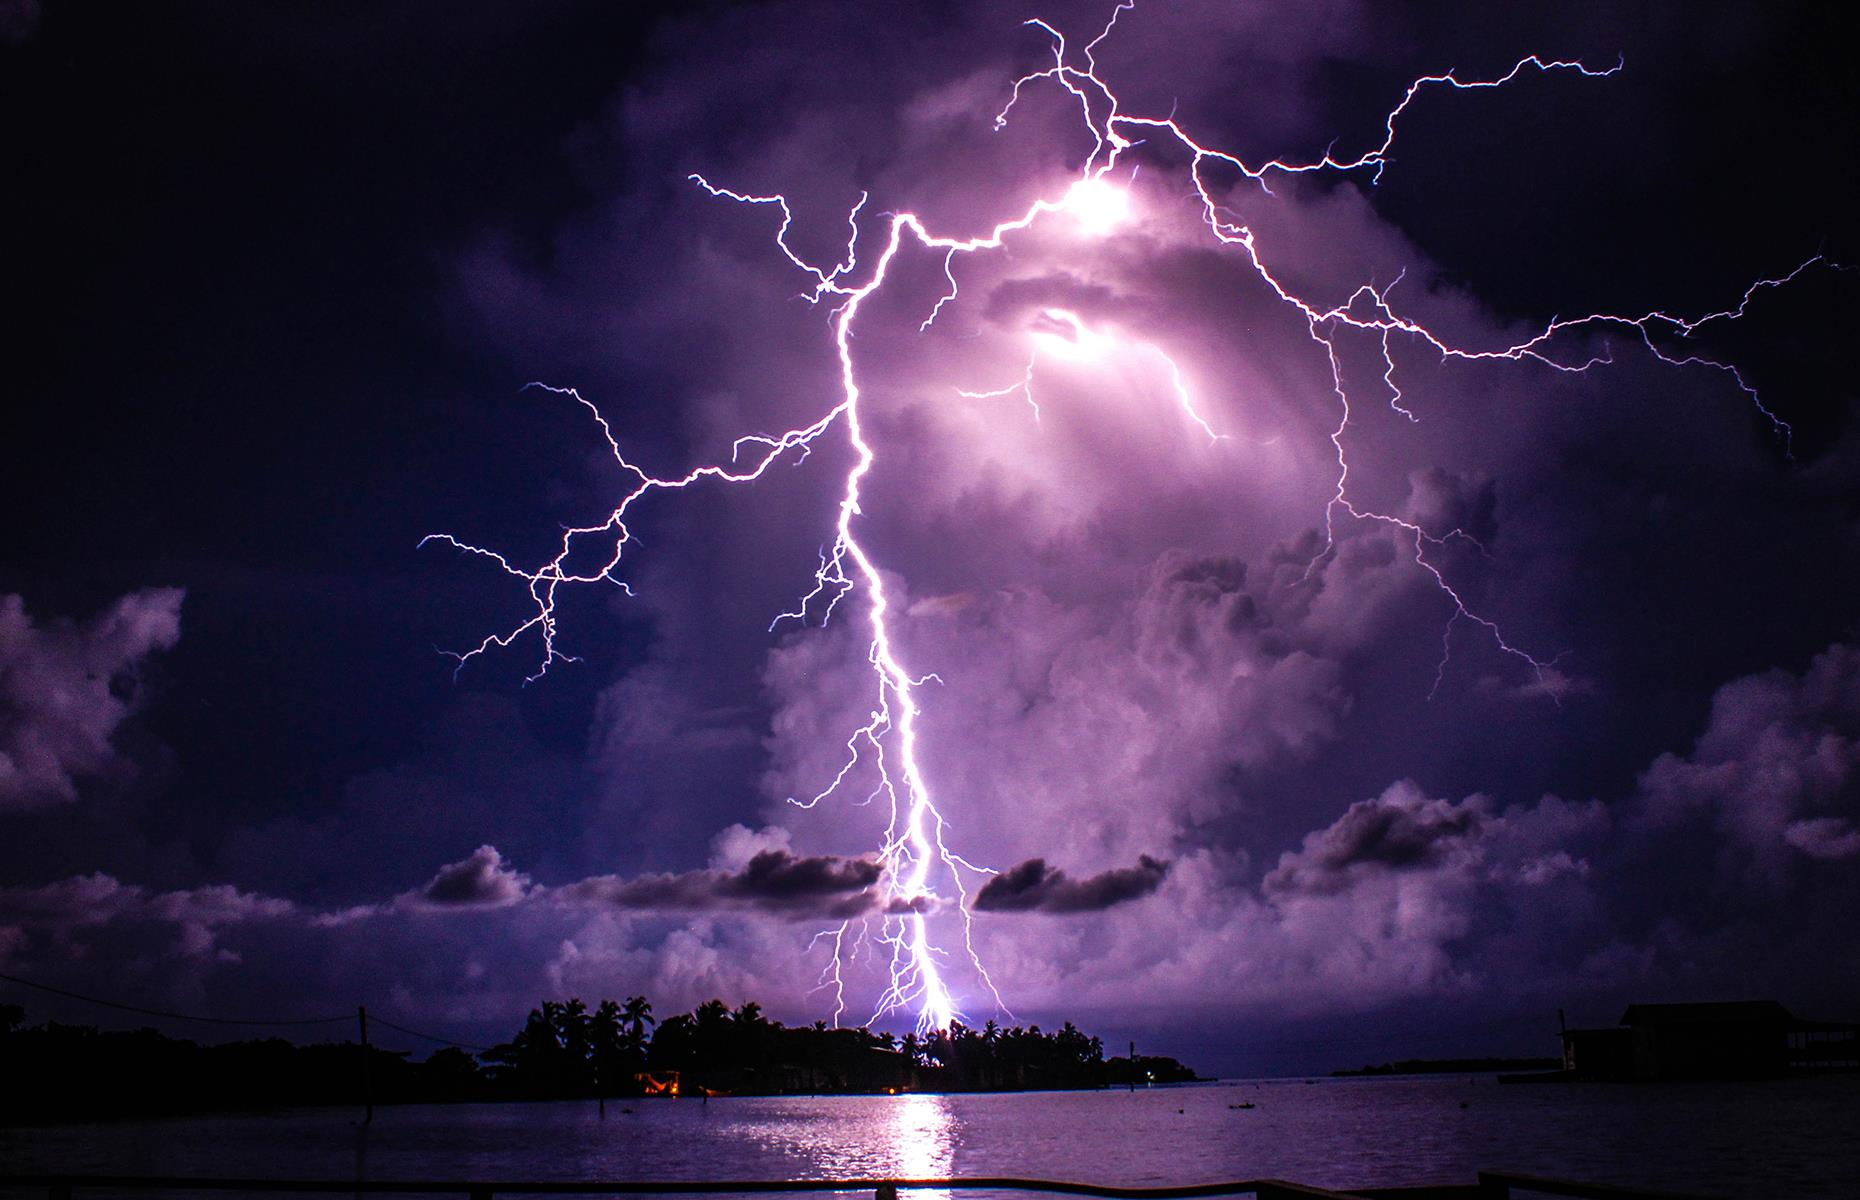 Slide 38 of 41: Unique to Venezuela, this type of lightning can only be observed over the mouth of the Catatumbo River where it empties into Lake Maracaibo. The lightning show occurs approximately 260 nights a year, 10 hours per day and up to 280 times per hour, however in 2010 it ceased from January to March due to a drought, leaving many in fear that the famous lightning might be extinguished permanently. Take a look at other jaw-dropping images of the world's weather.